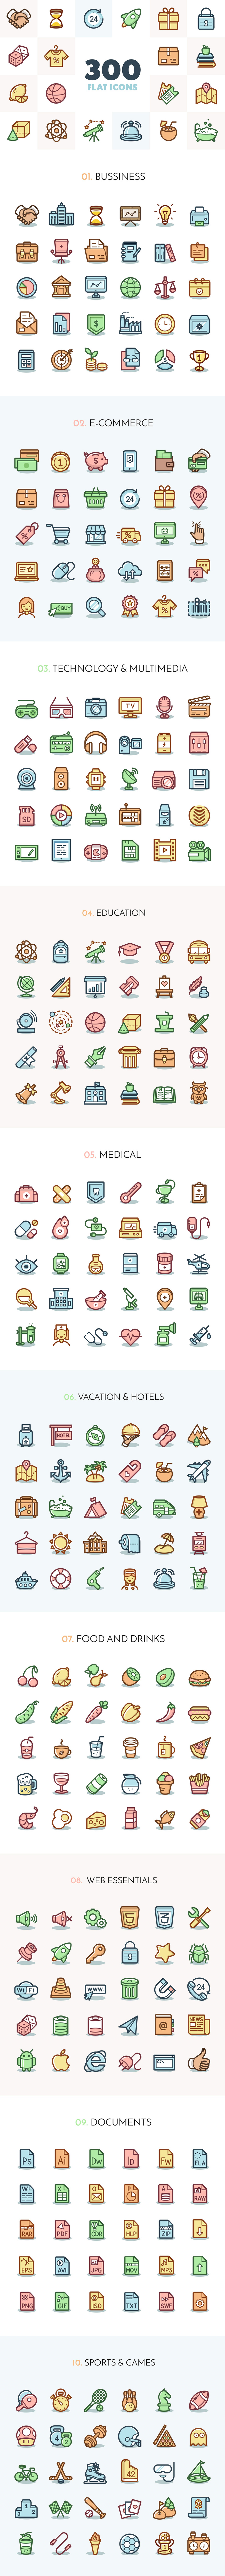 Capitalist Flat Icons Collection